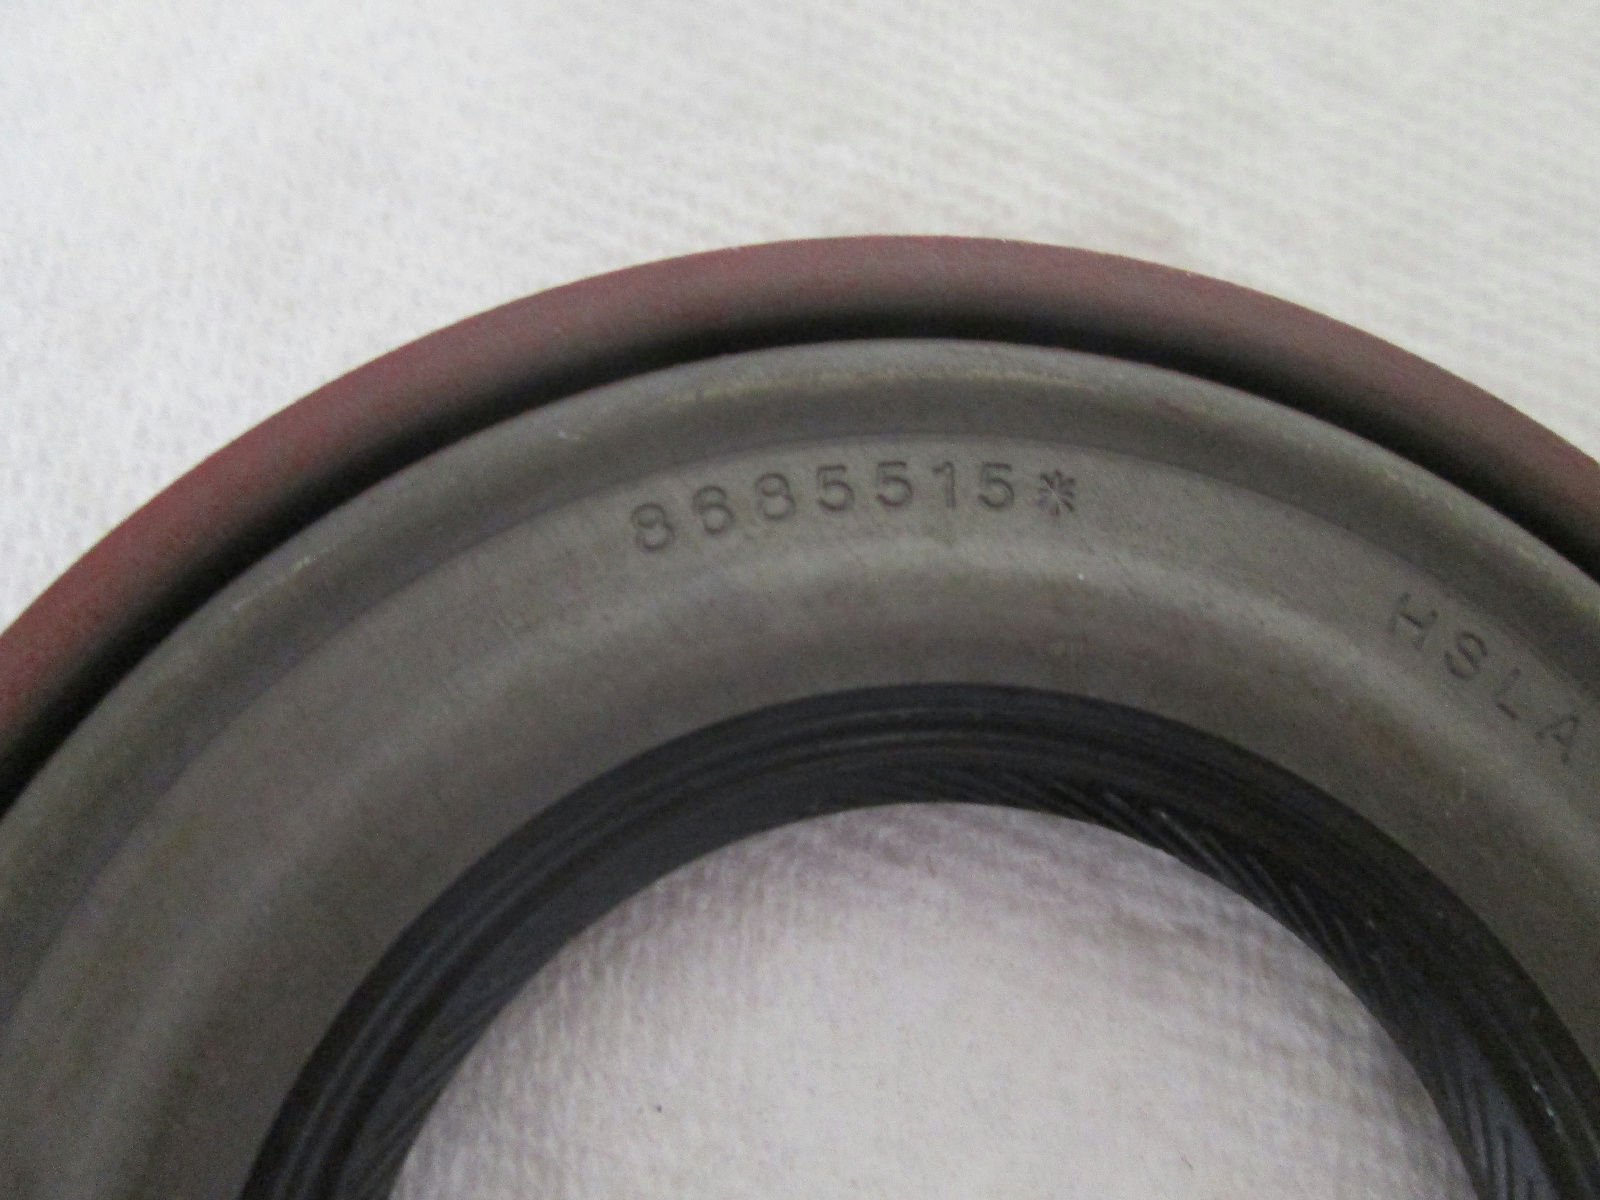 NEW AC Delco 8685515 Genuine GM Automatic Transmission Torque Converter Seal image 3